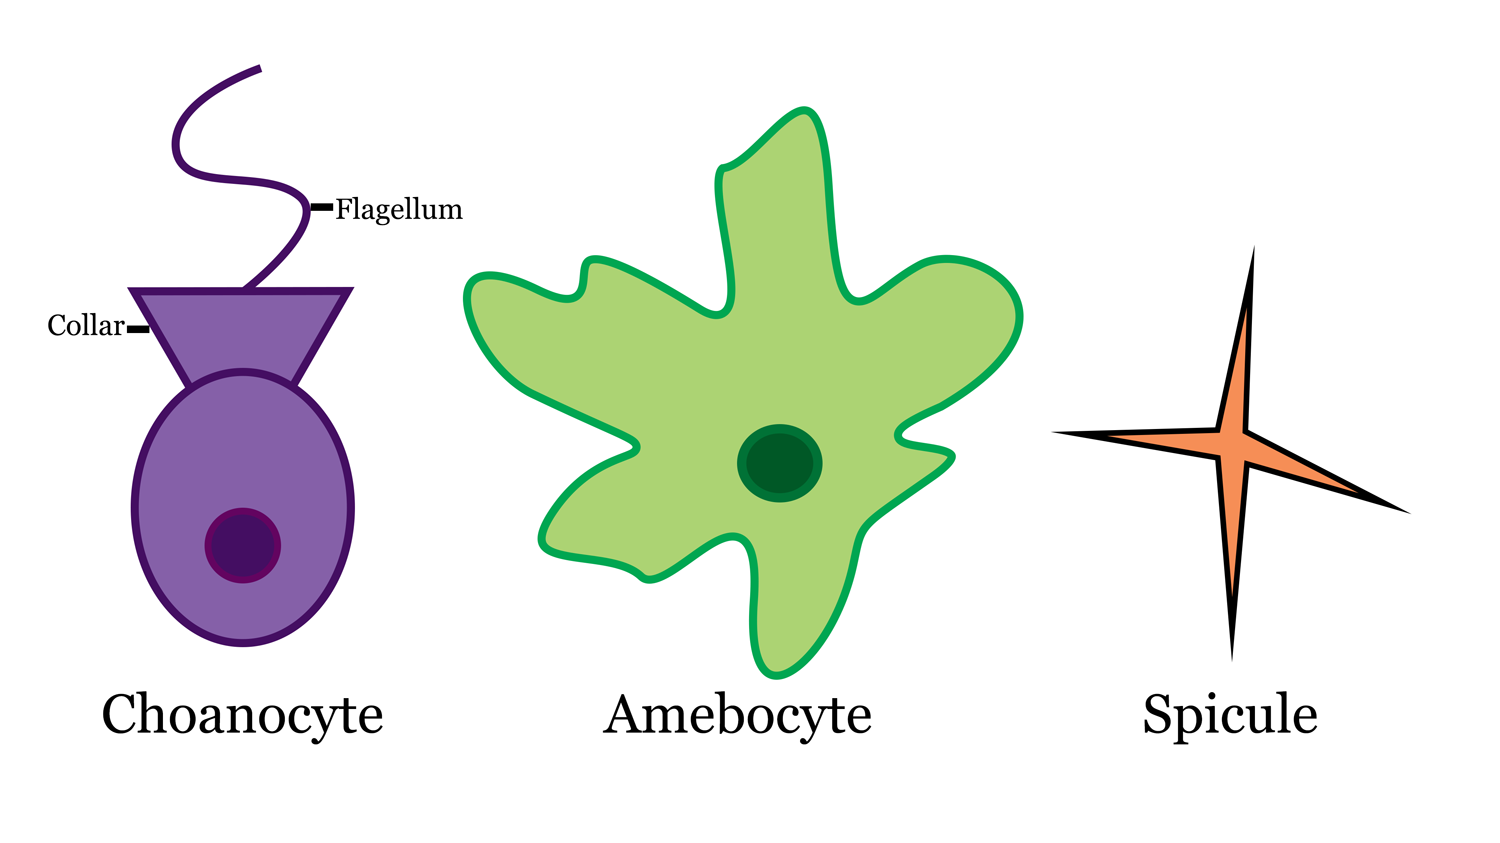 Diagram of sponge cells (choanocyte and amebocyte) and spicule